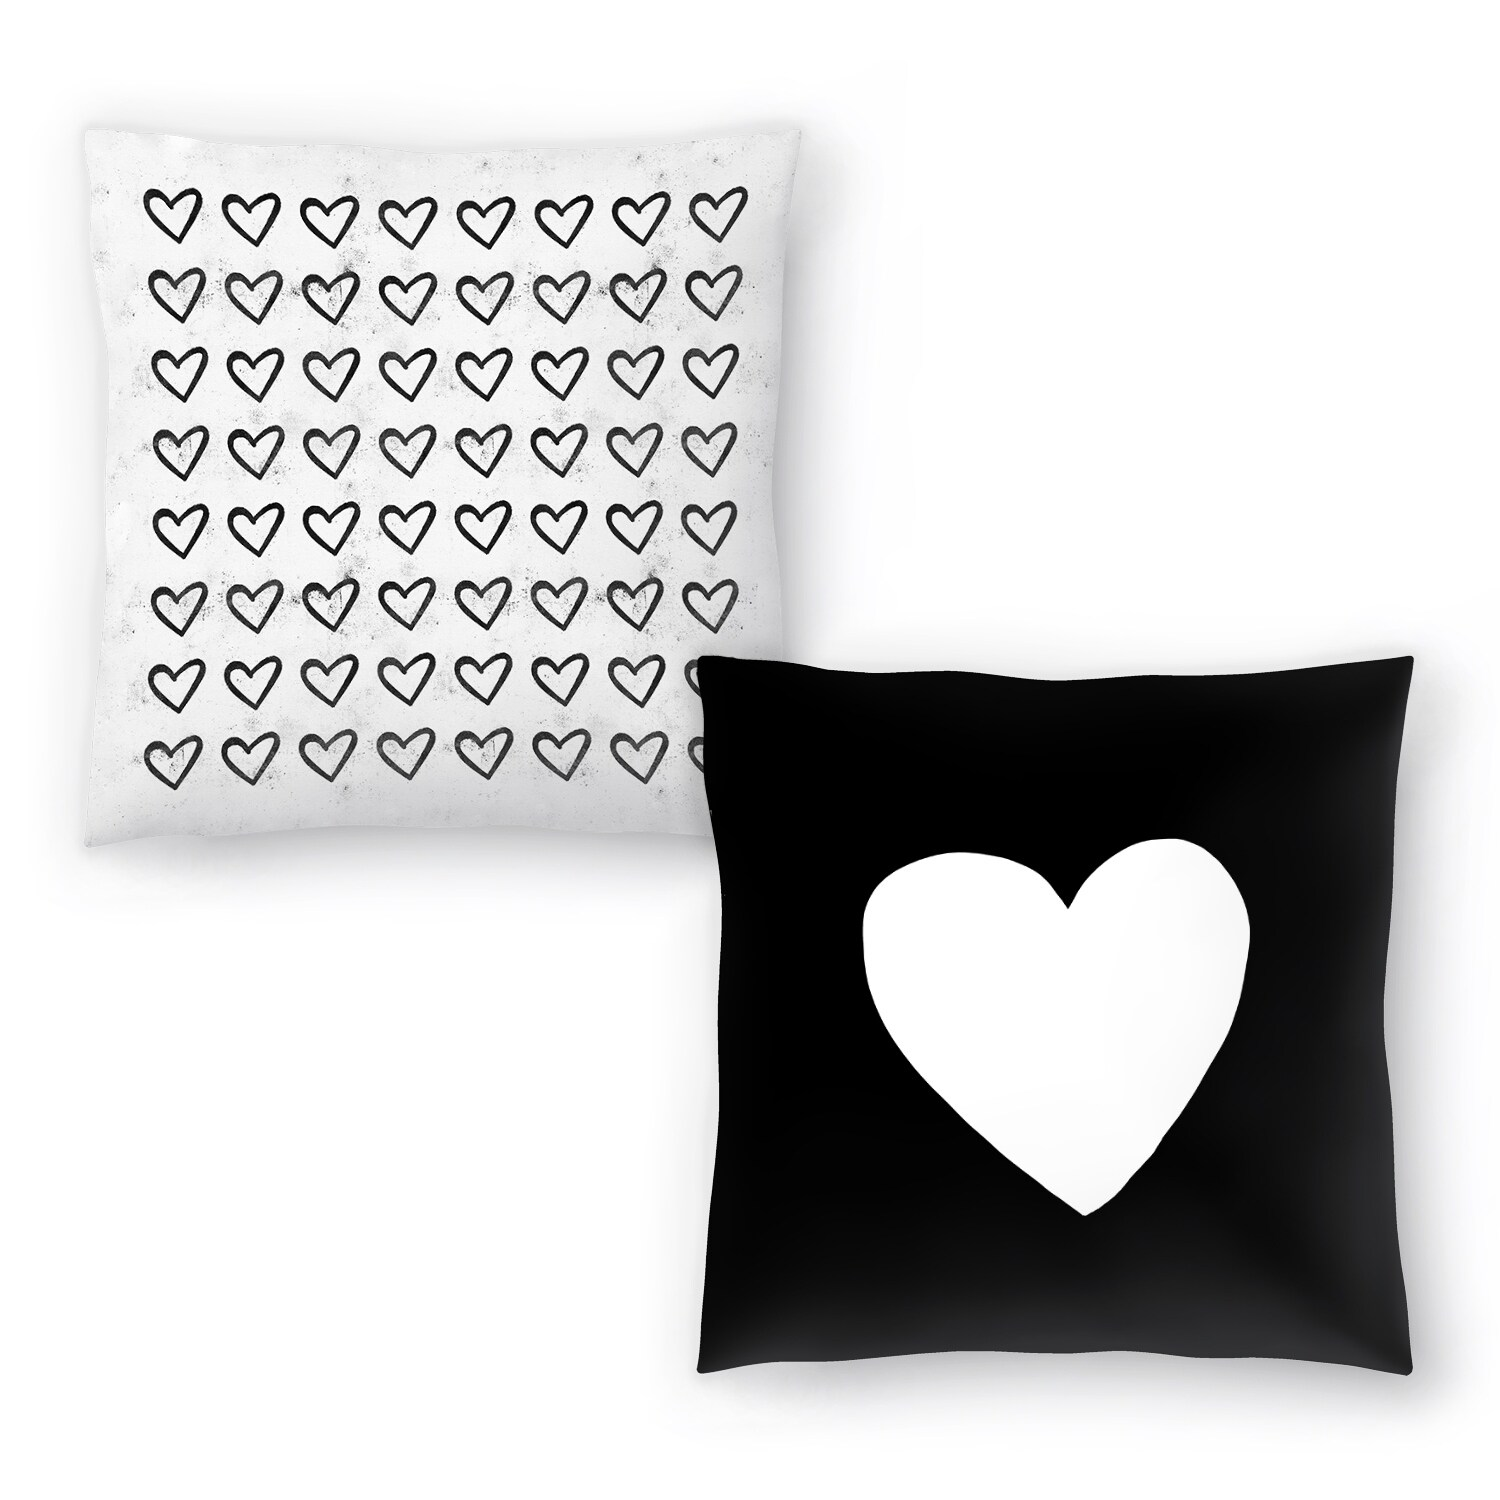 Big Heart And Big Heart Ink Splatter Set Of 2 Decorative Pillows On Sale Overstock 31033901